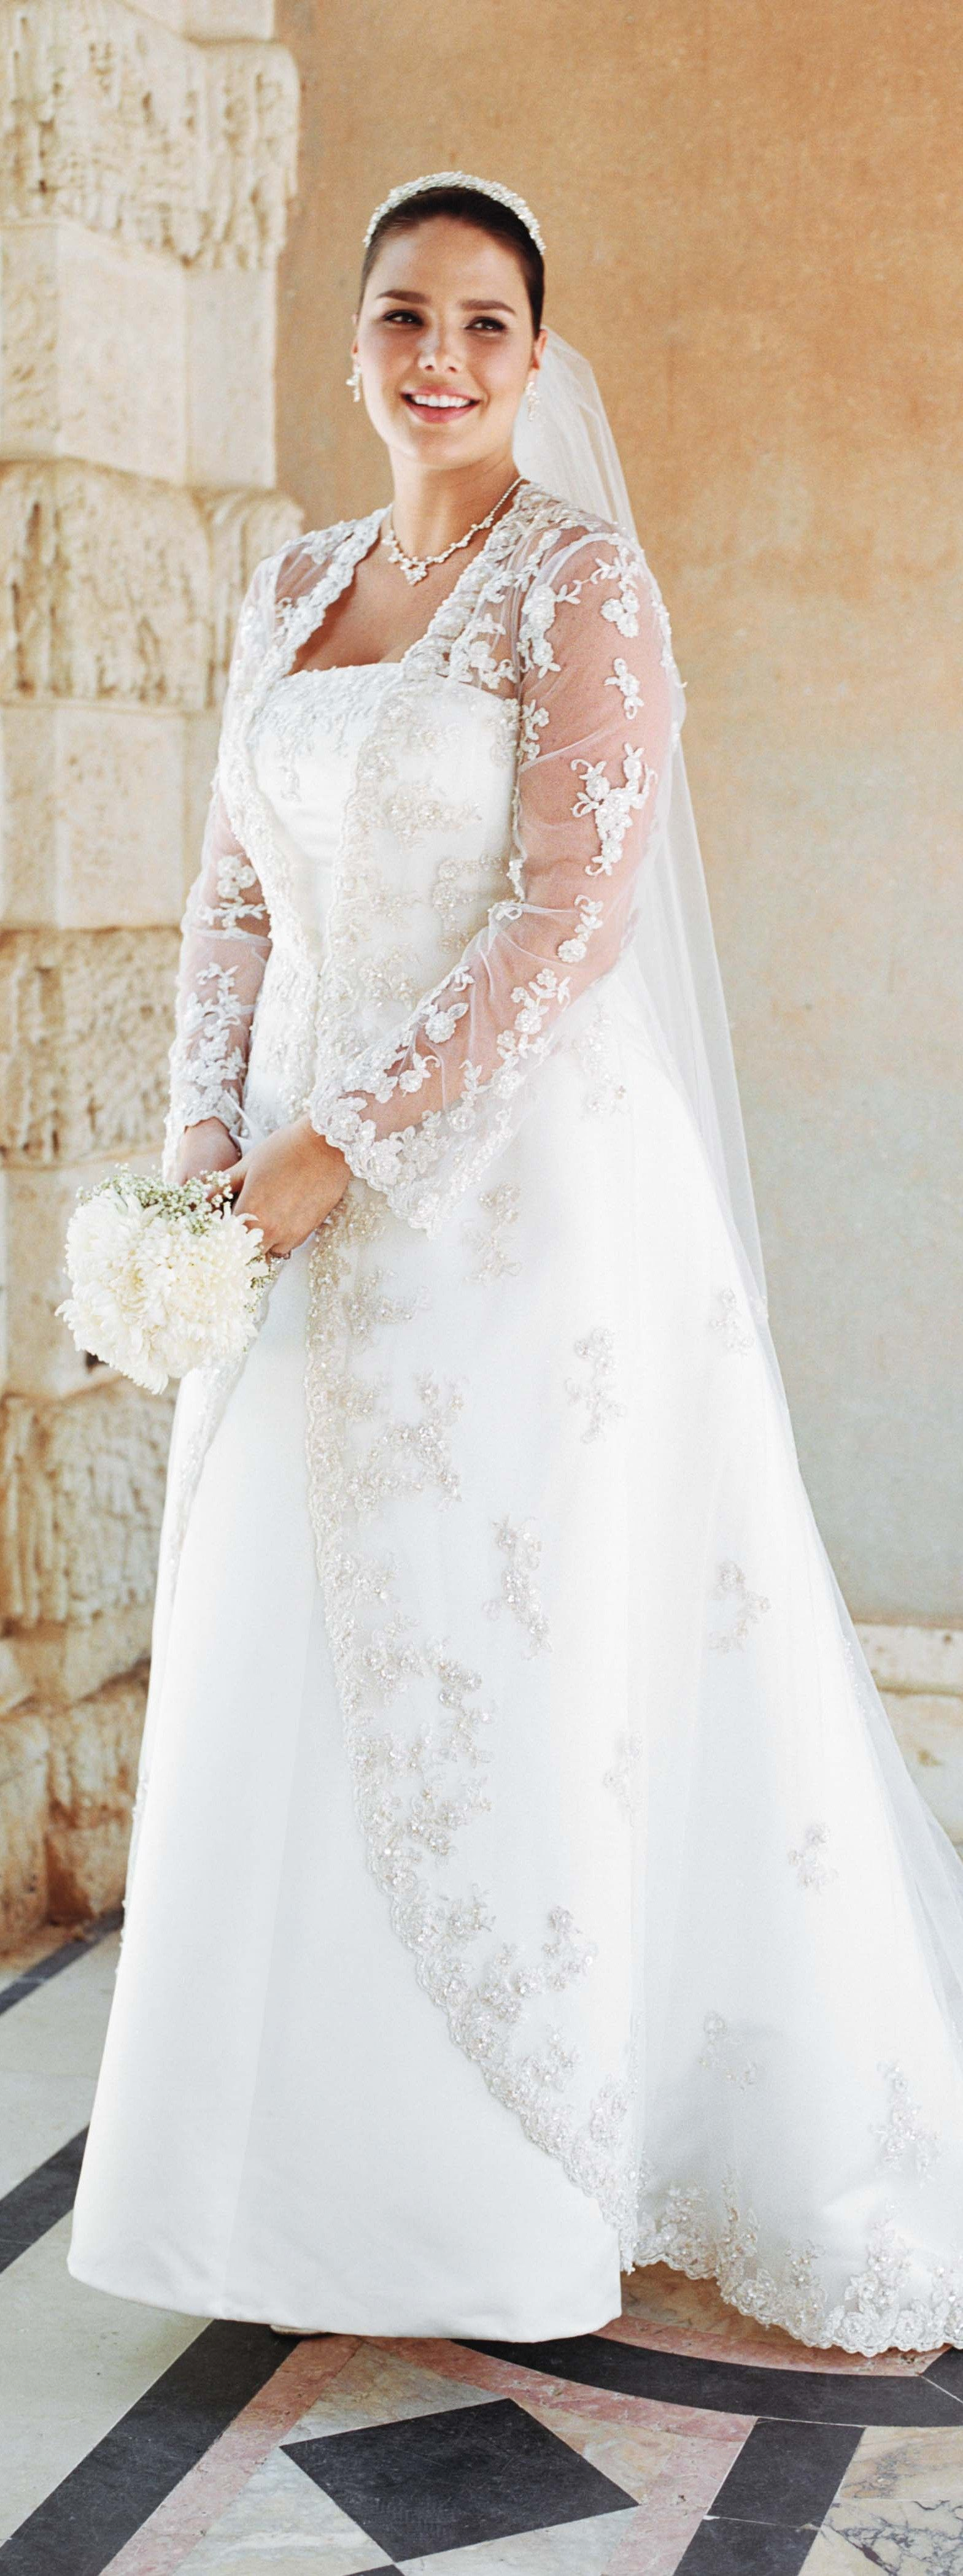 Wedding dress with sleeves from davidus bridal article about plus